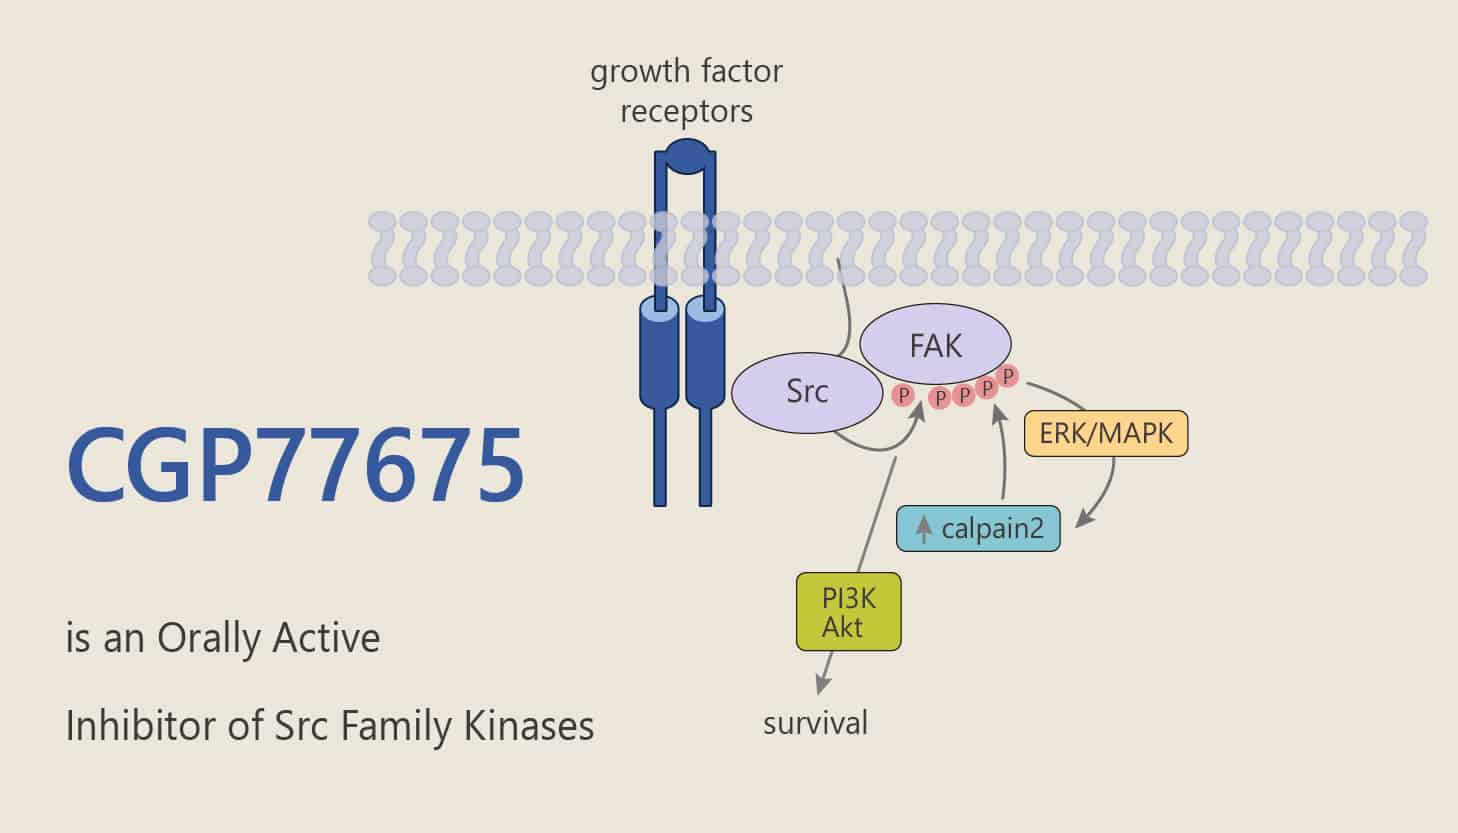 CGP77675 is an Orally Active Inhibitor of Src Family Kinases 2020 05 30 - CGP77675 is an Orally Active Inhibitor of Src Family Kinases